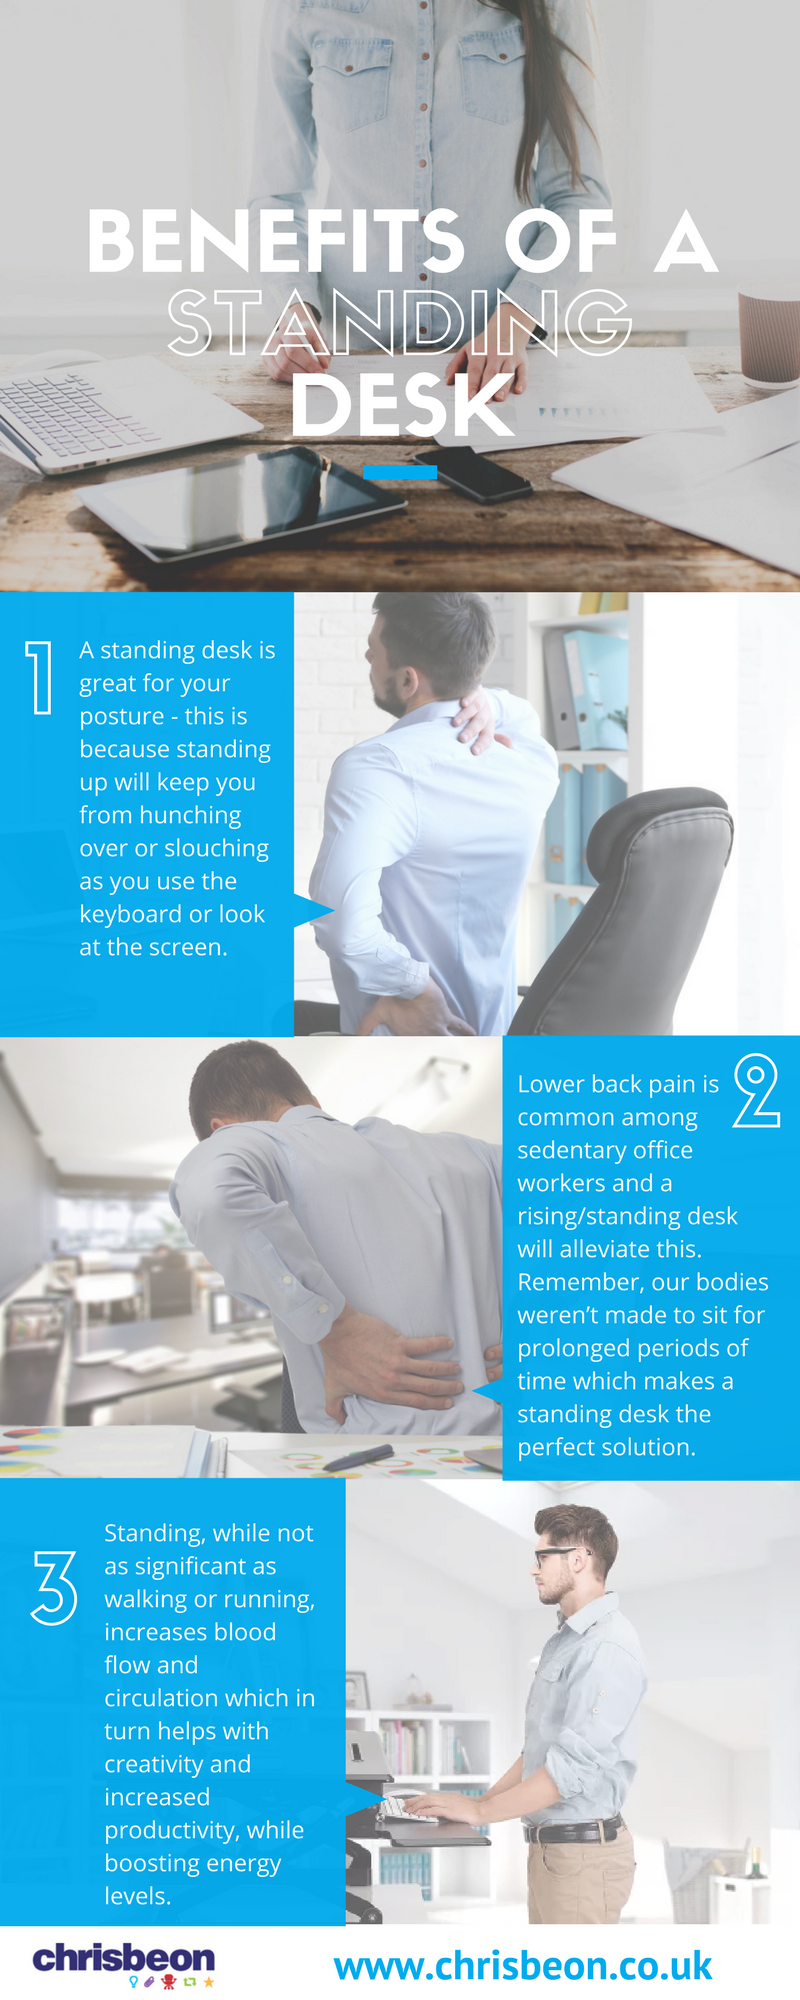 Benefits of a standing desk | Chrisbeon